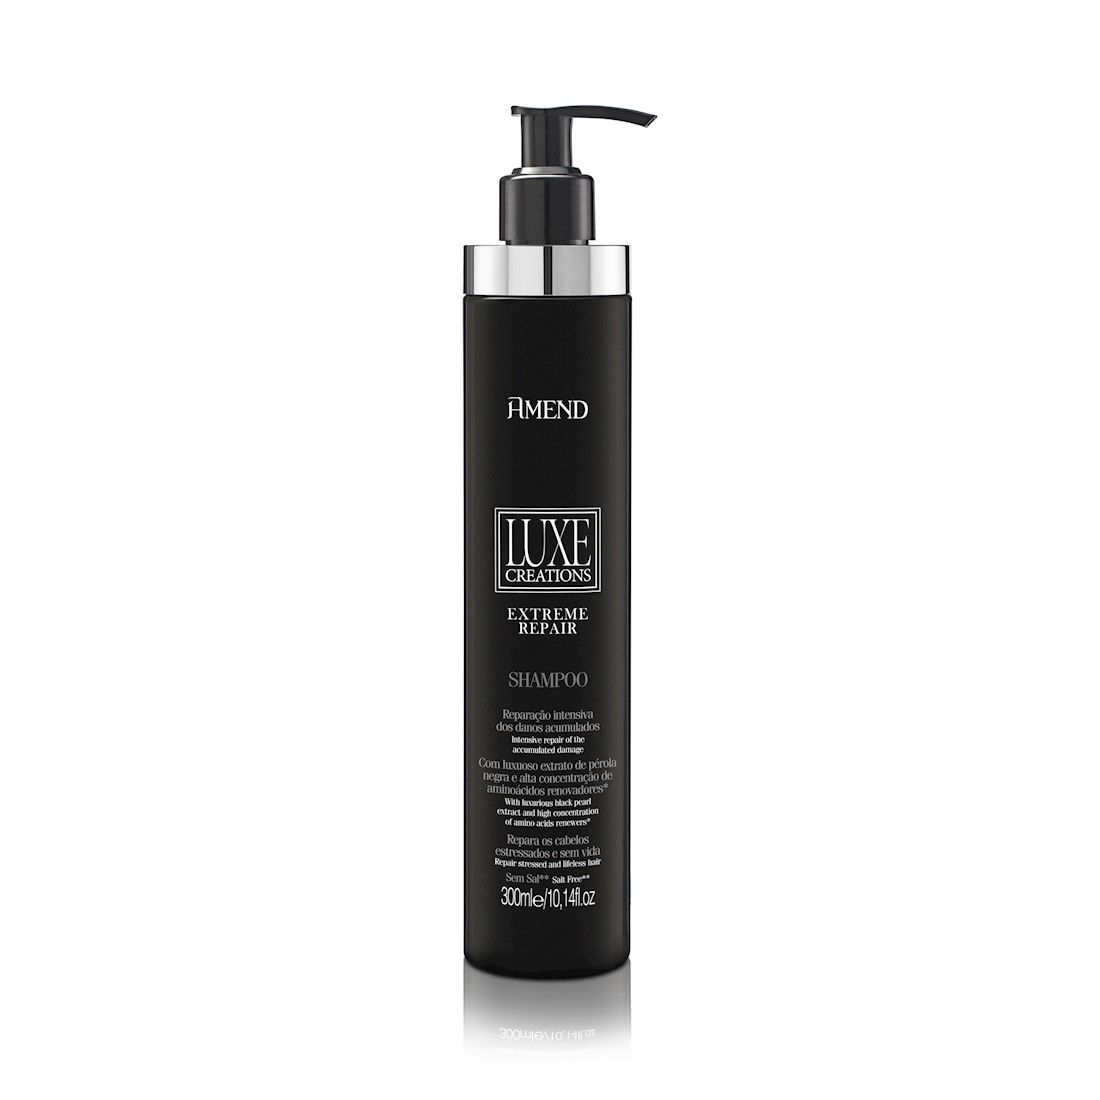 Amend Shampoo Luxe Creations Extreme Repair  300mL